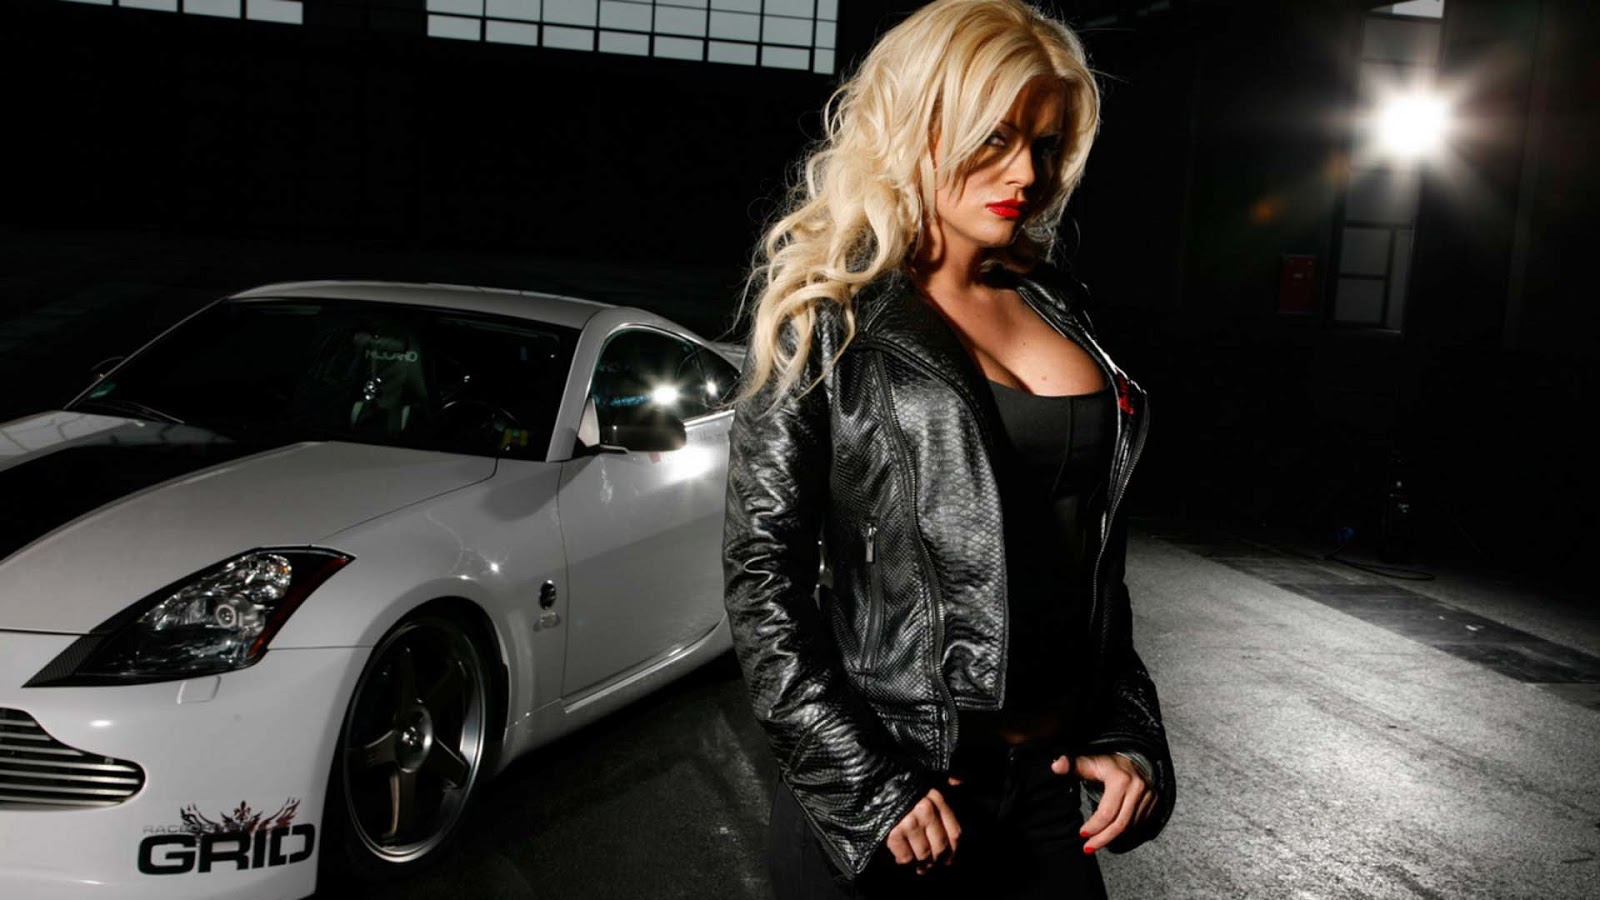 Free Download Sexy Girls And Cars Wallpapers Hd Part 4